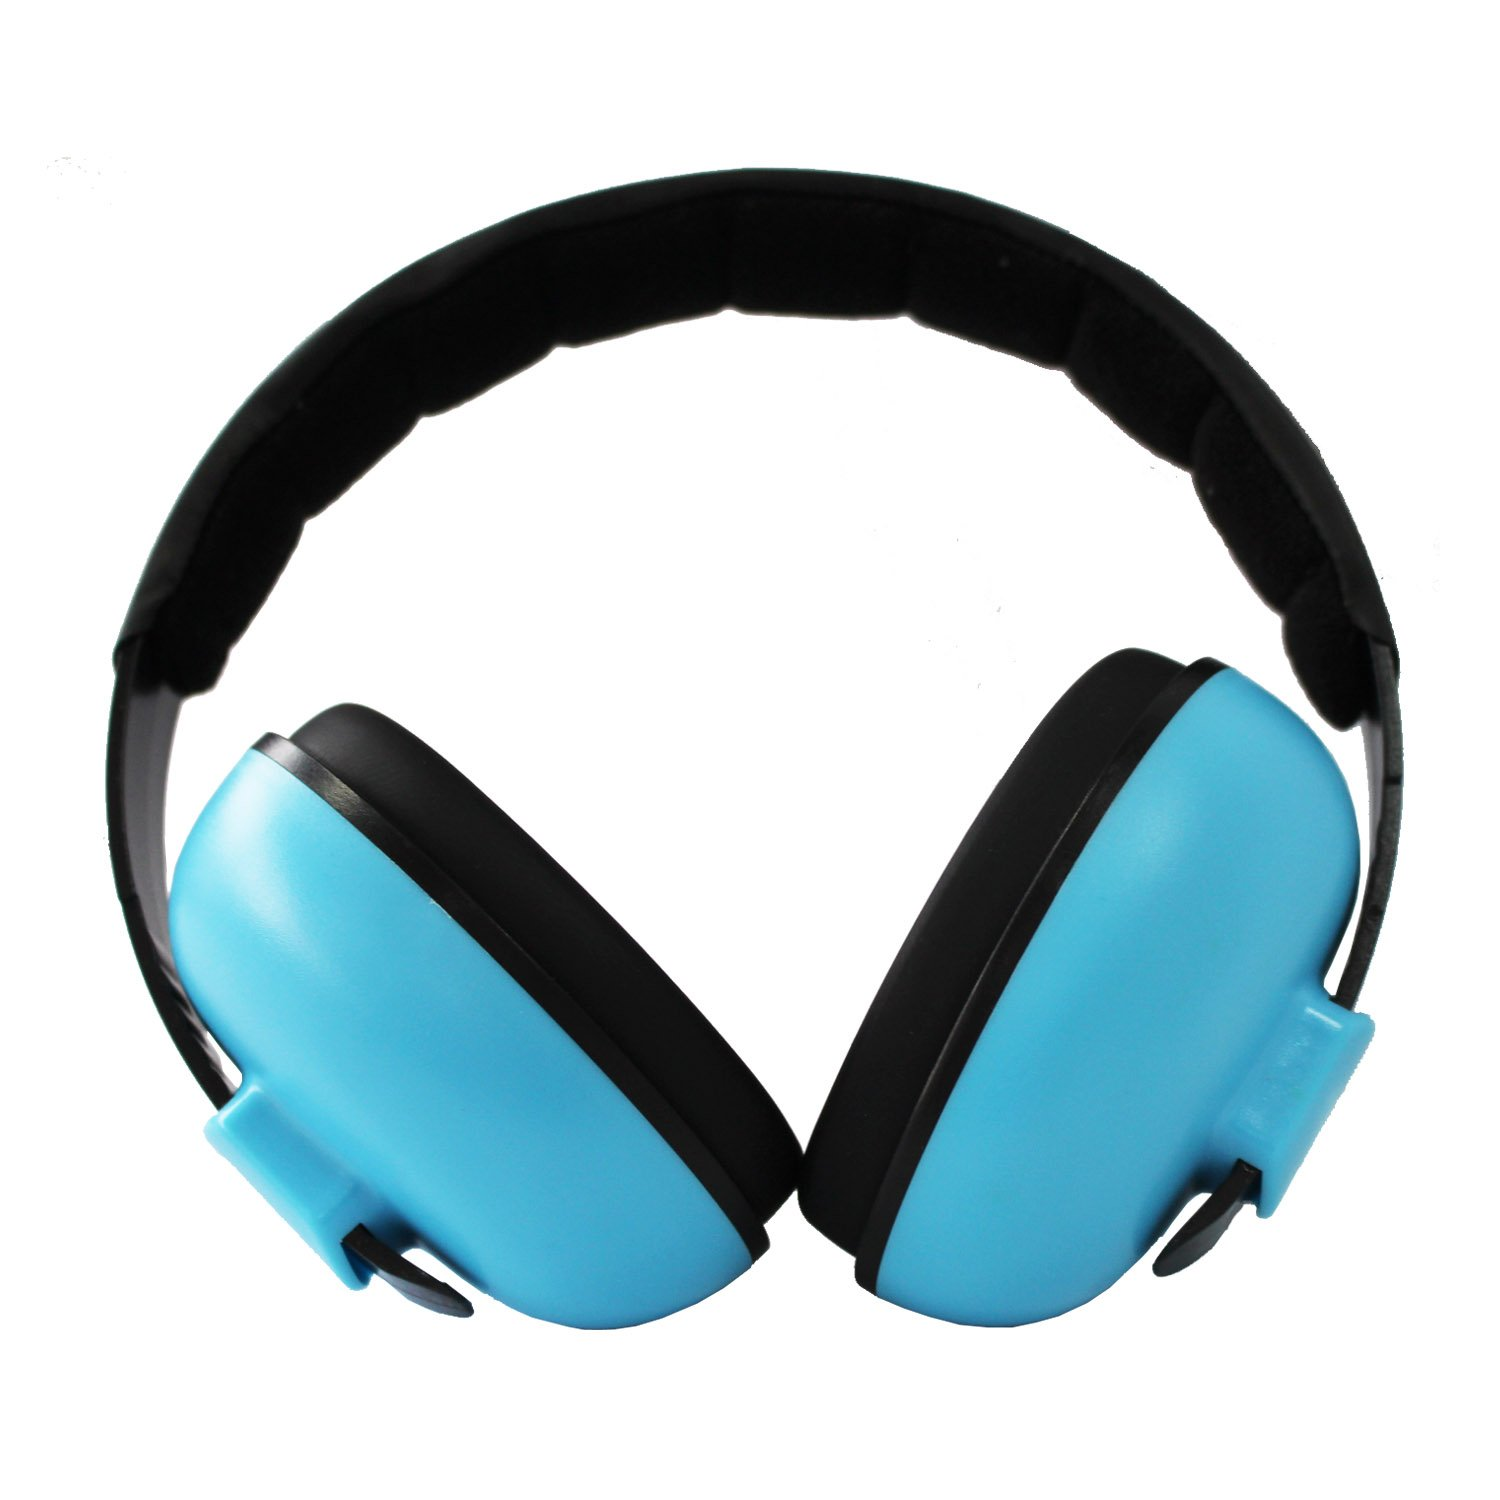 Comhoney Foldable and Adjustable Baby Ear Muffs Infant Hearing Protection Ear Defenders Safety /& Noise Reduction for Newborn 3 Months blue 2 Years for Sleep Shooting Airplane